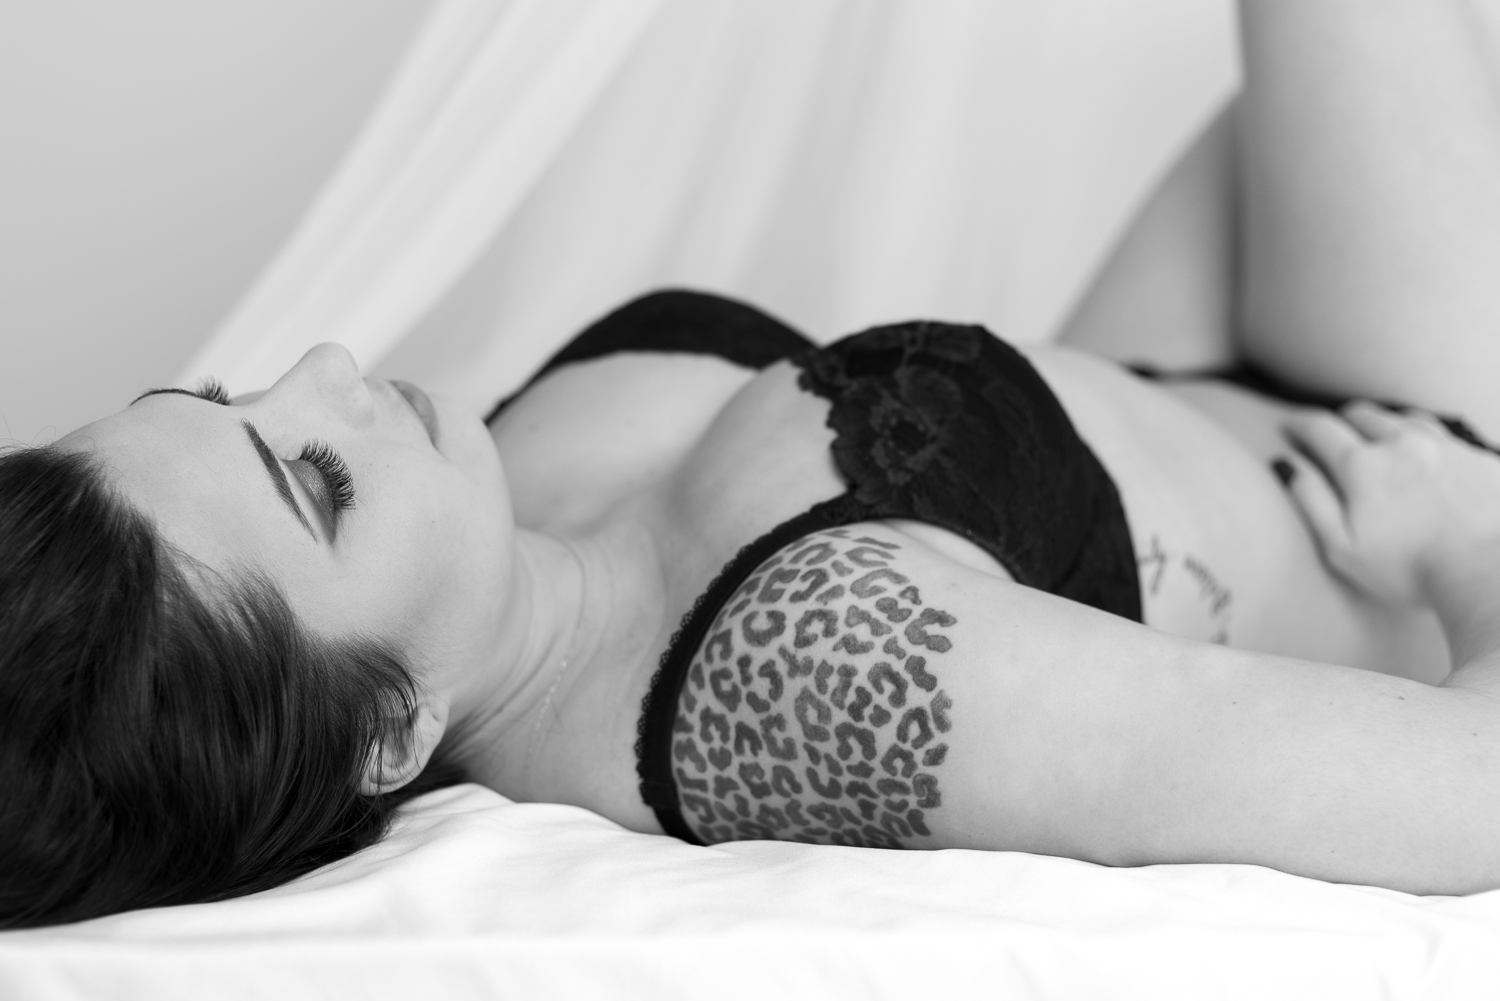 Fort Campbell classy boudoir photography, Hopkinsville, KY, Clarksville, TN, Nashville, TN - D. Phillips Photography